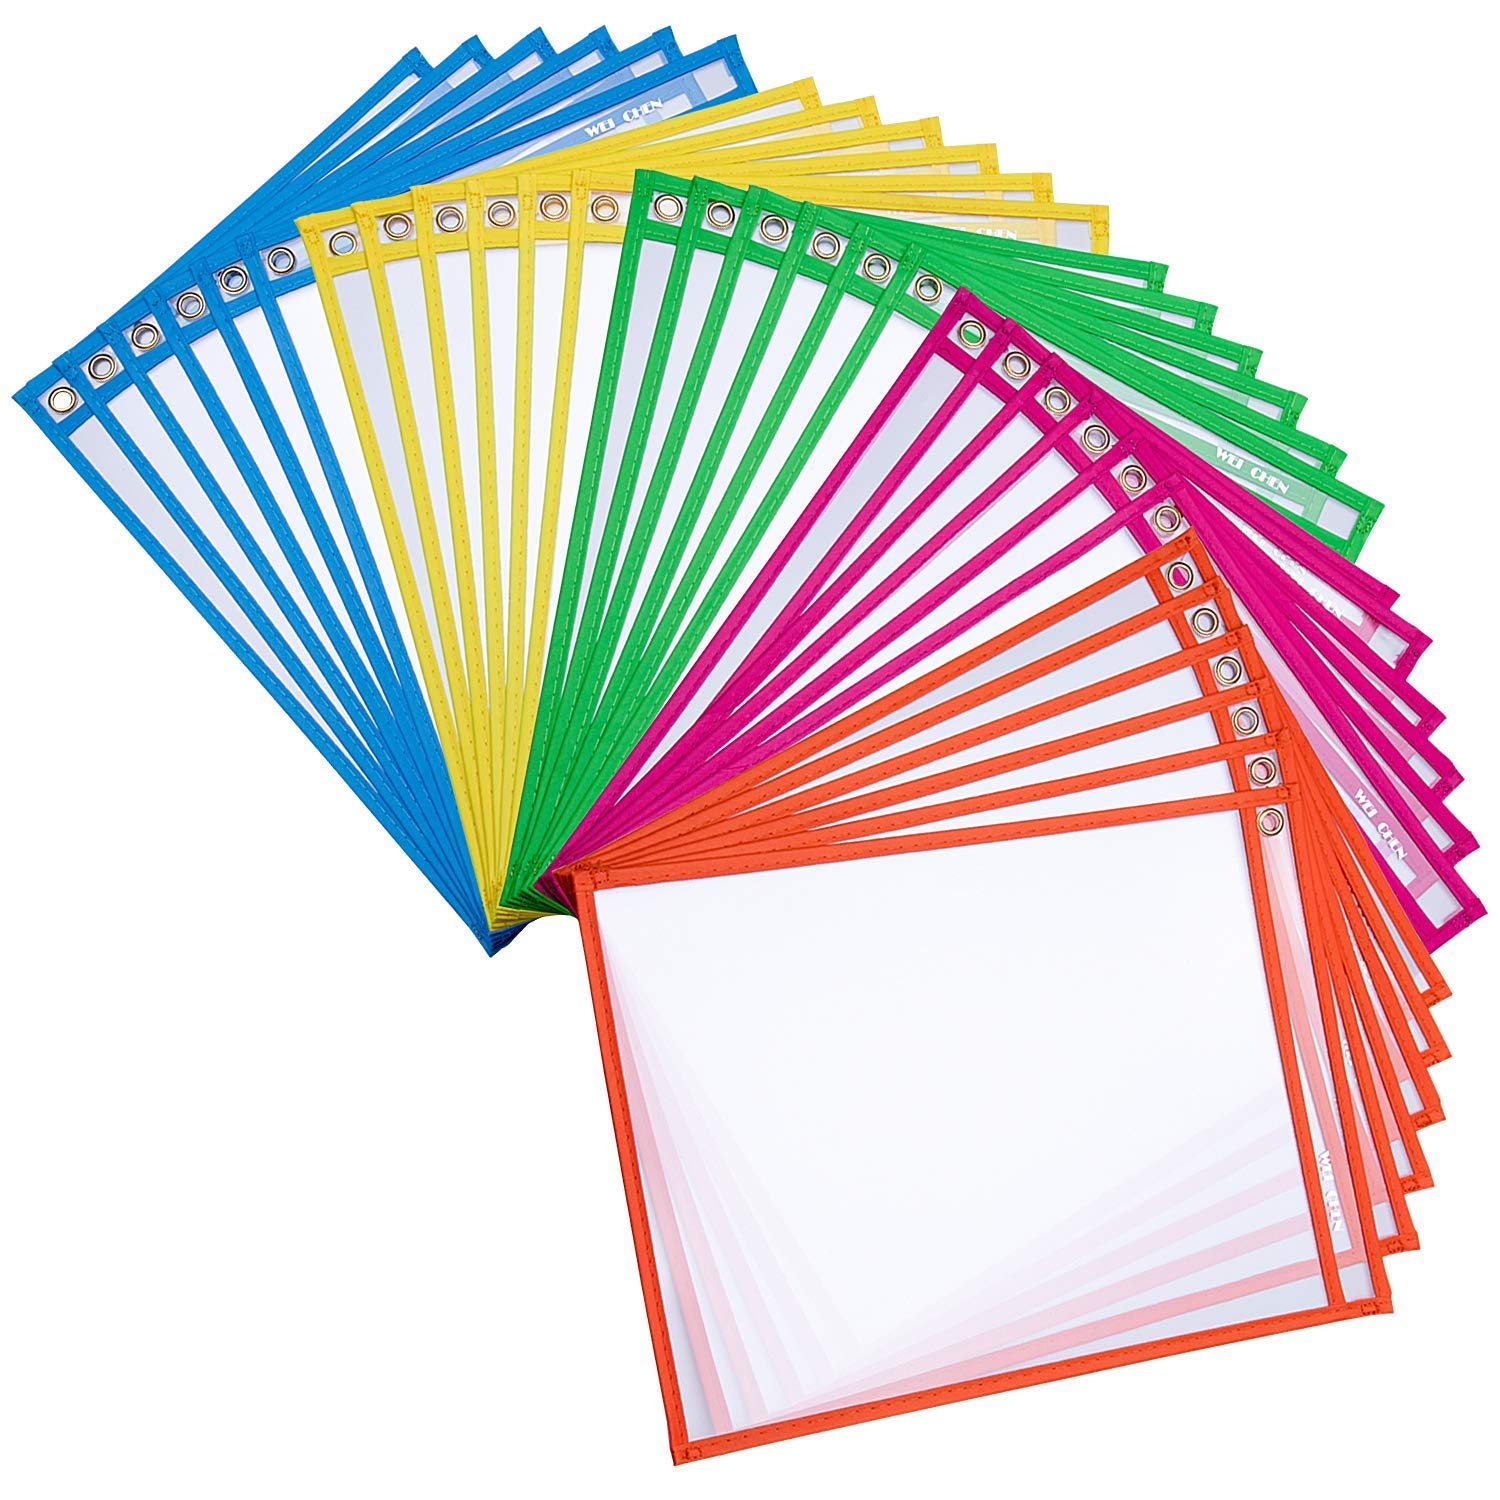 Dry Erase Pockets Rusable Dry Erase Sleeves 30 Pack Eraseble Pocket Sleeve Protect Clear Pocket with Hole Hanger and Colorful Edge(5colors)  by HW